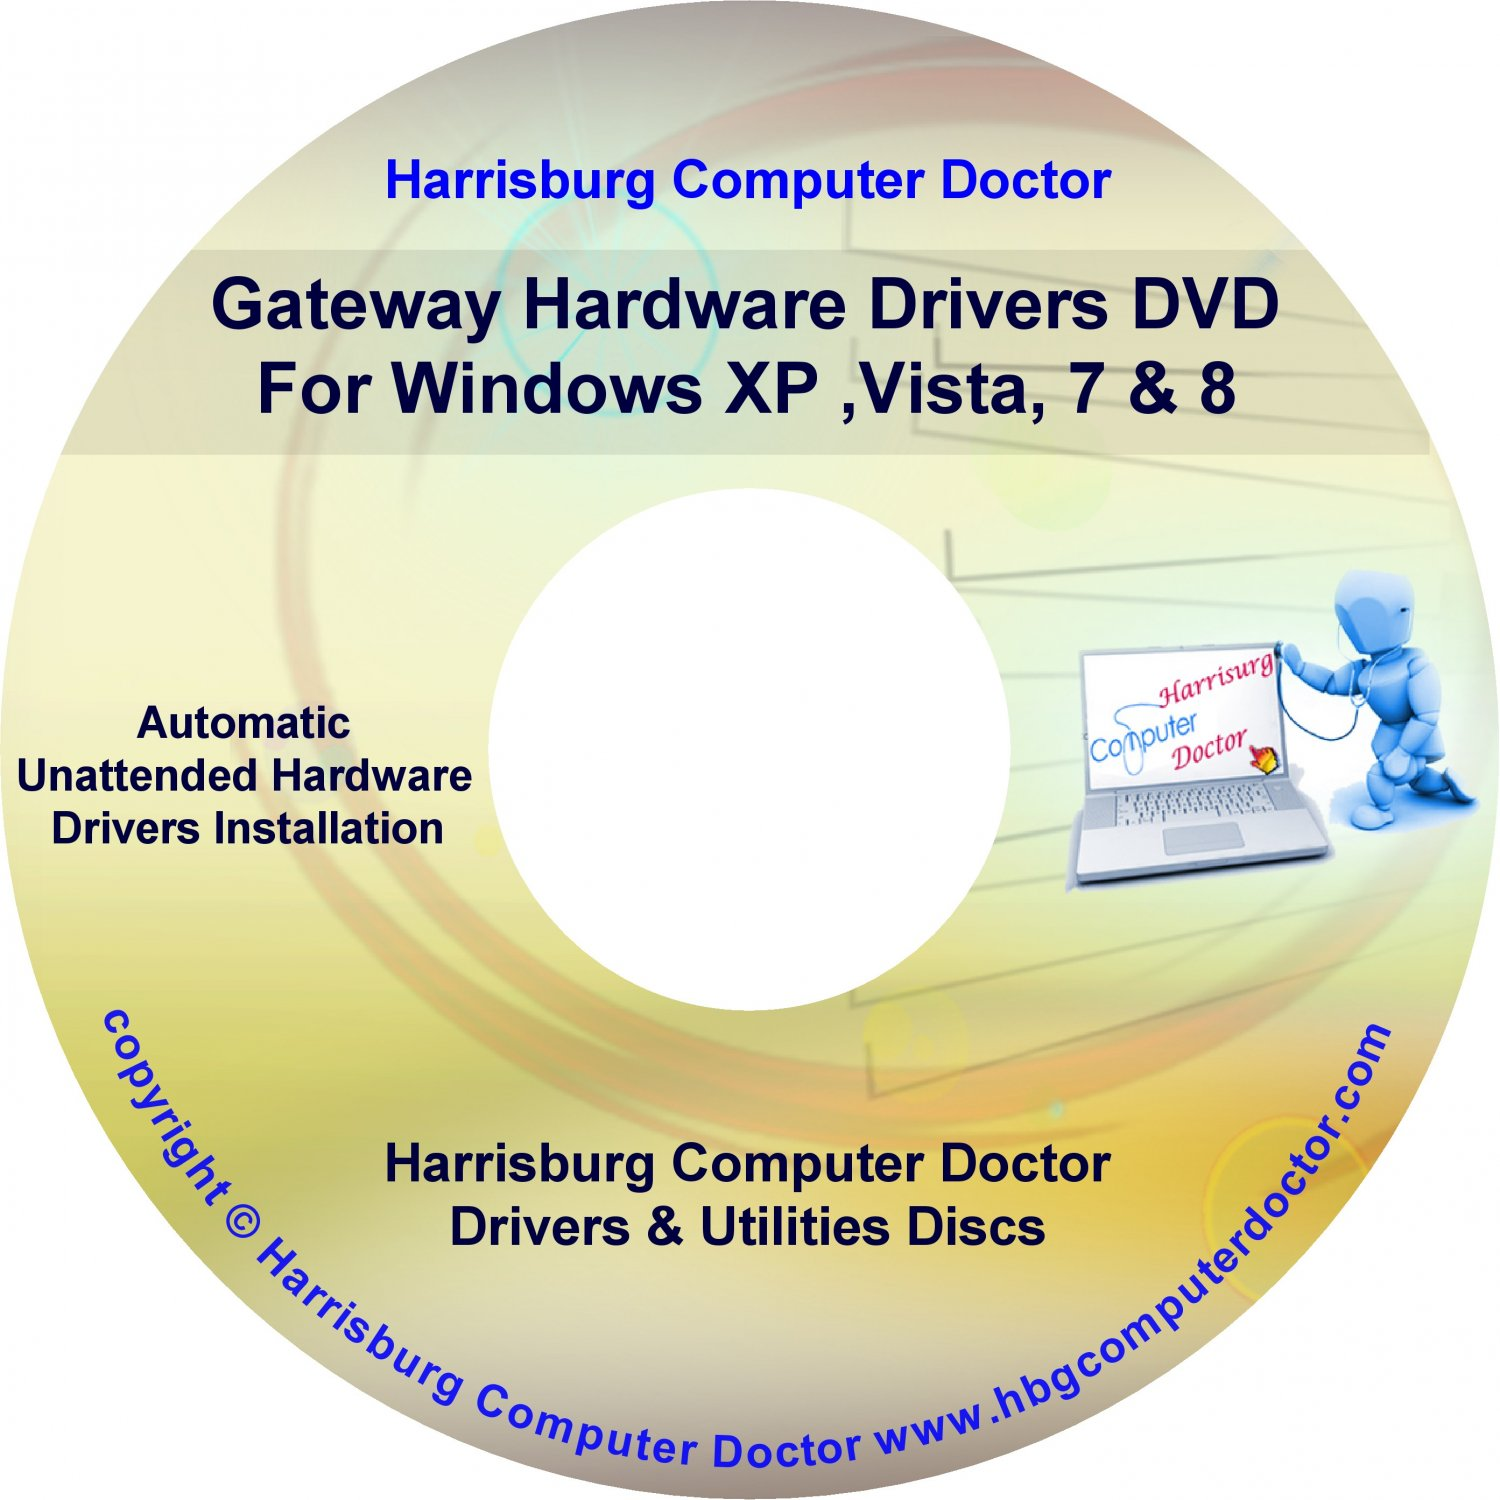 Gateway T-6334c Drivers DVD For Windows, XP, Vista, 7 & 8